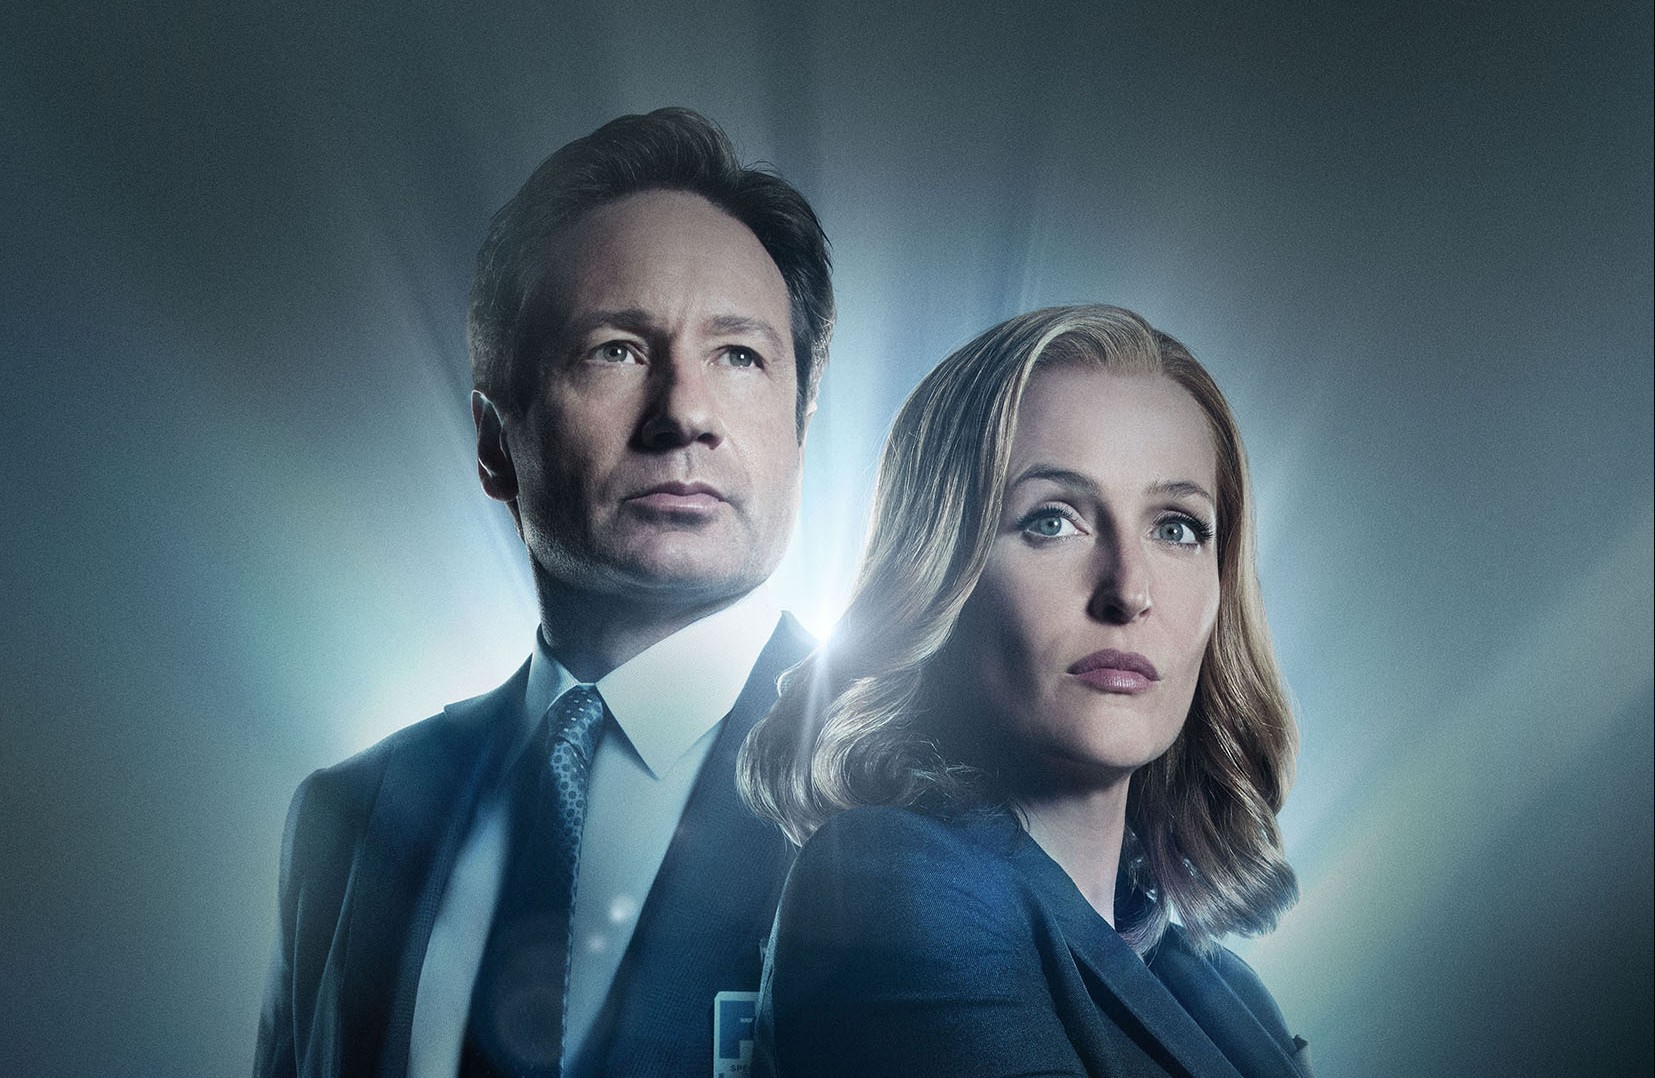 the-x-files-2016-100-gallery_6-e1452001669227